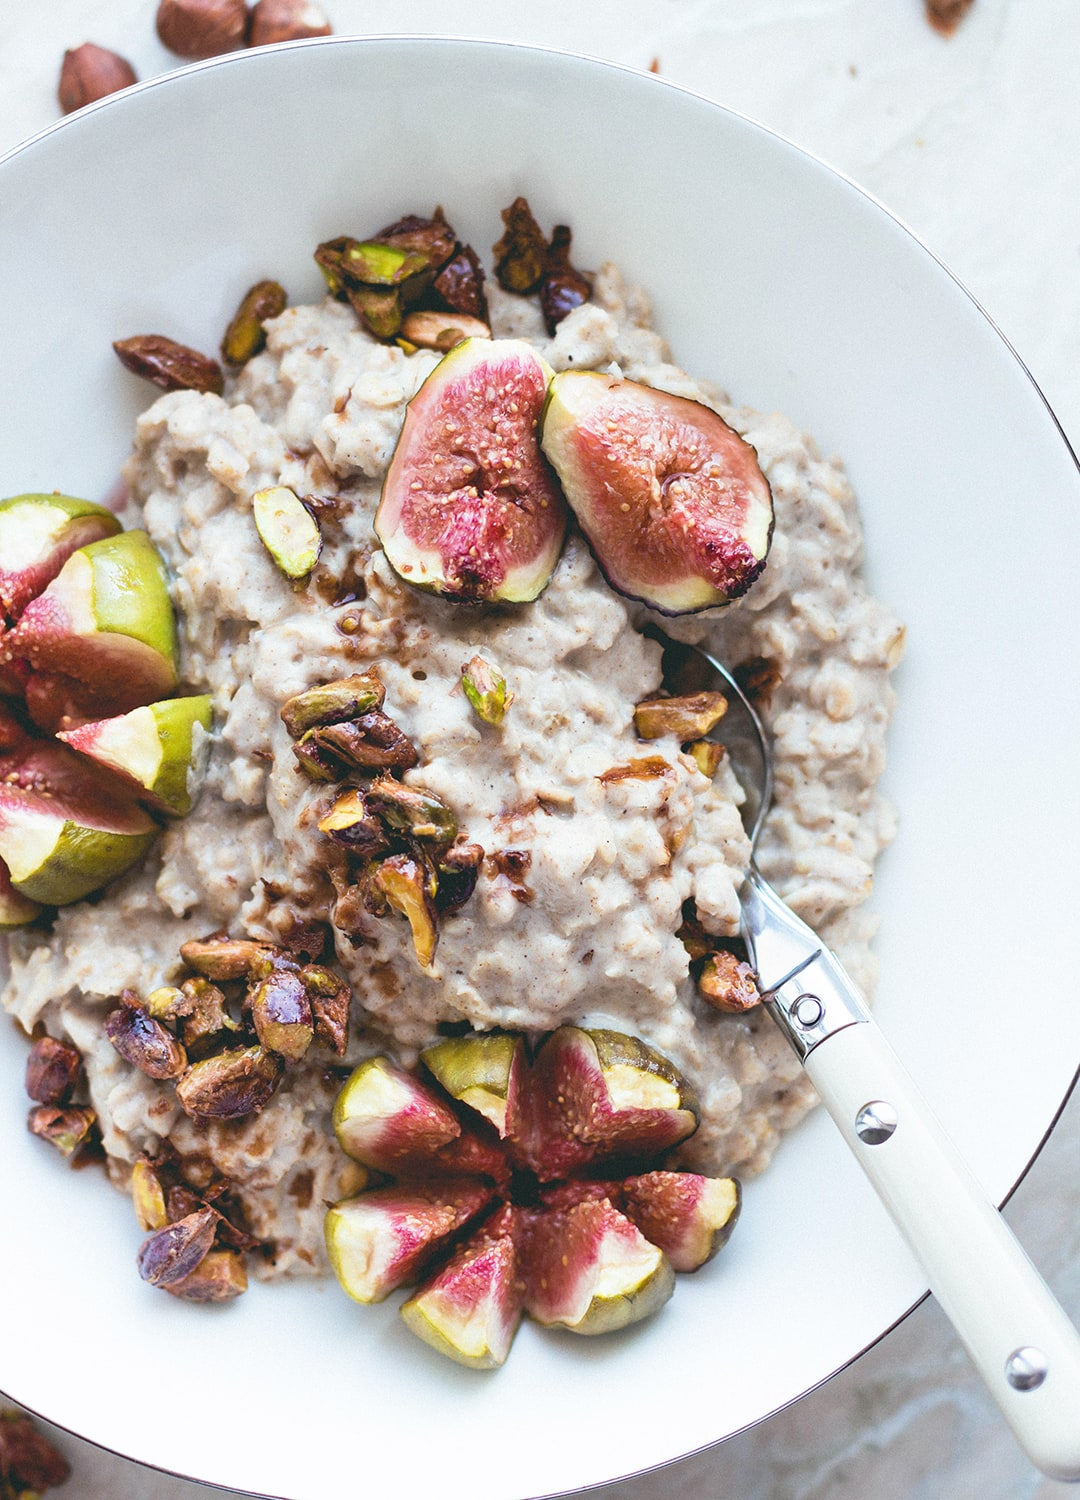 Hazelnut Oatmeal with Caramelized Pistachios and figs (vegan, GF) - delicious simple oatmeal. Filling, comforting, satisfying, and absolutely scrumptious! Super easy recipe! | thehealthfulideas.com